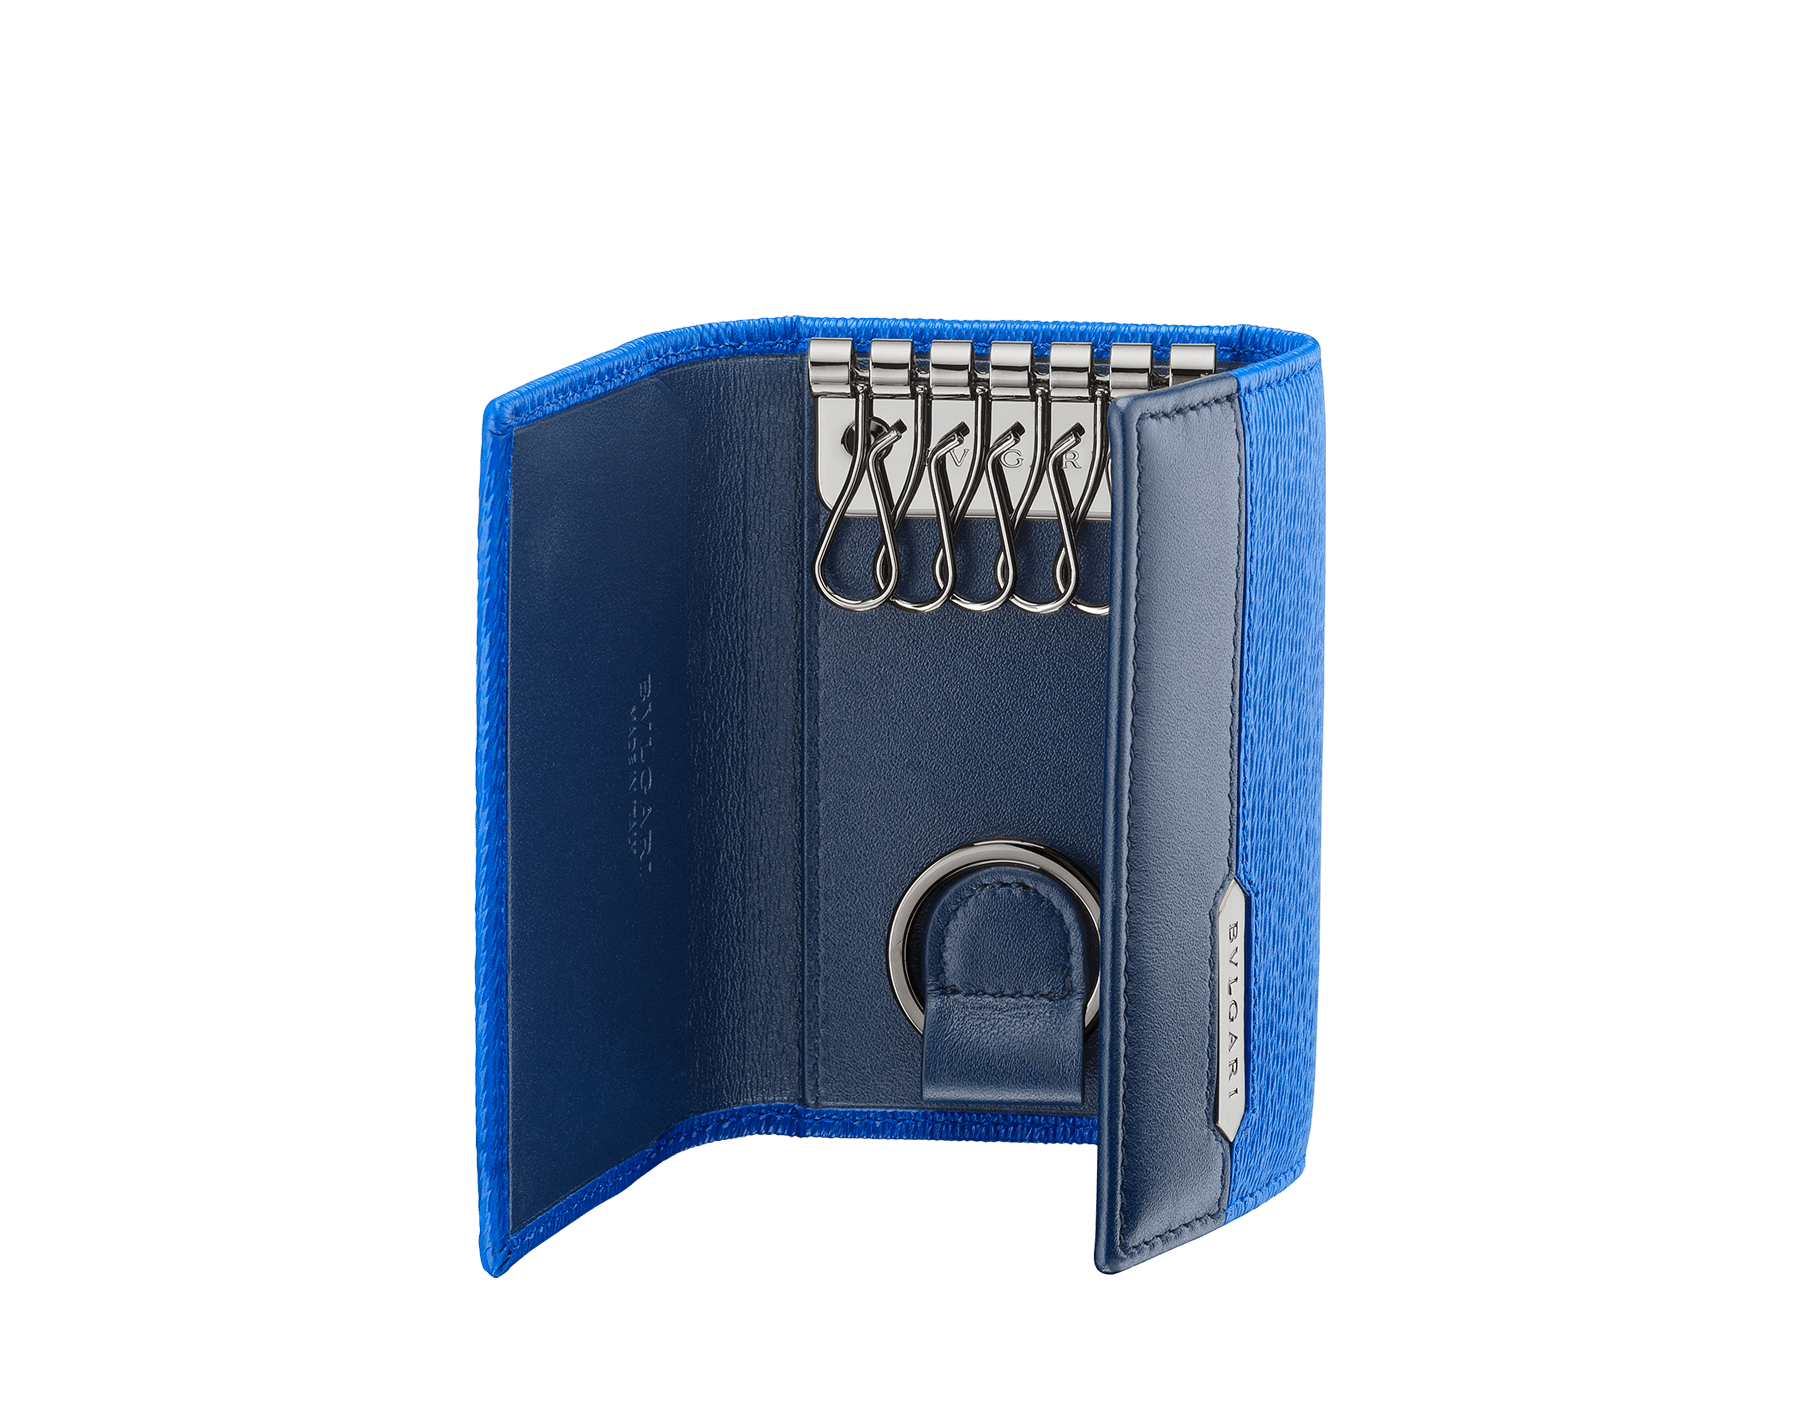 Serpenti Scaglie men's key holder in cobalt tourmaline grazed calf leather and denim sapphire calf leather. Bvlgari logo engraved on the hexagonal scaglie metal plate finished in dark ruthenium. 288459 image 2